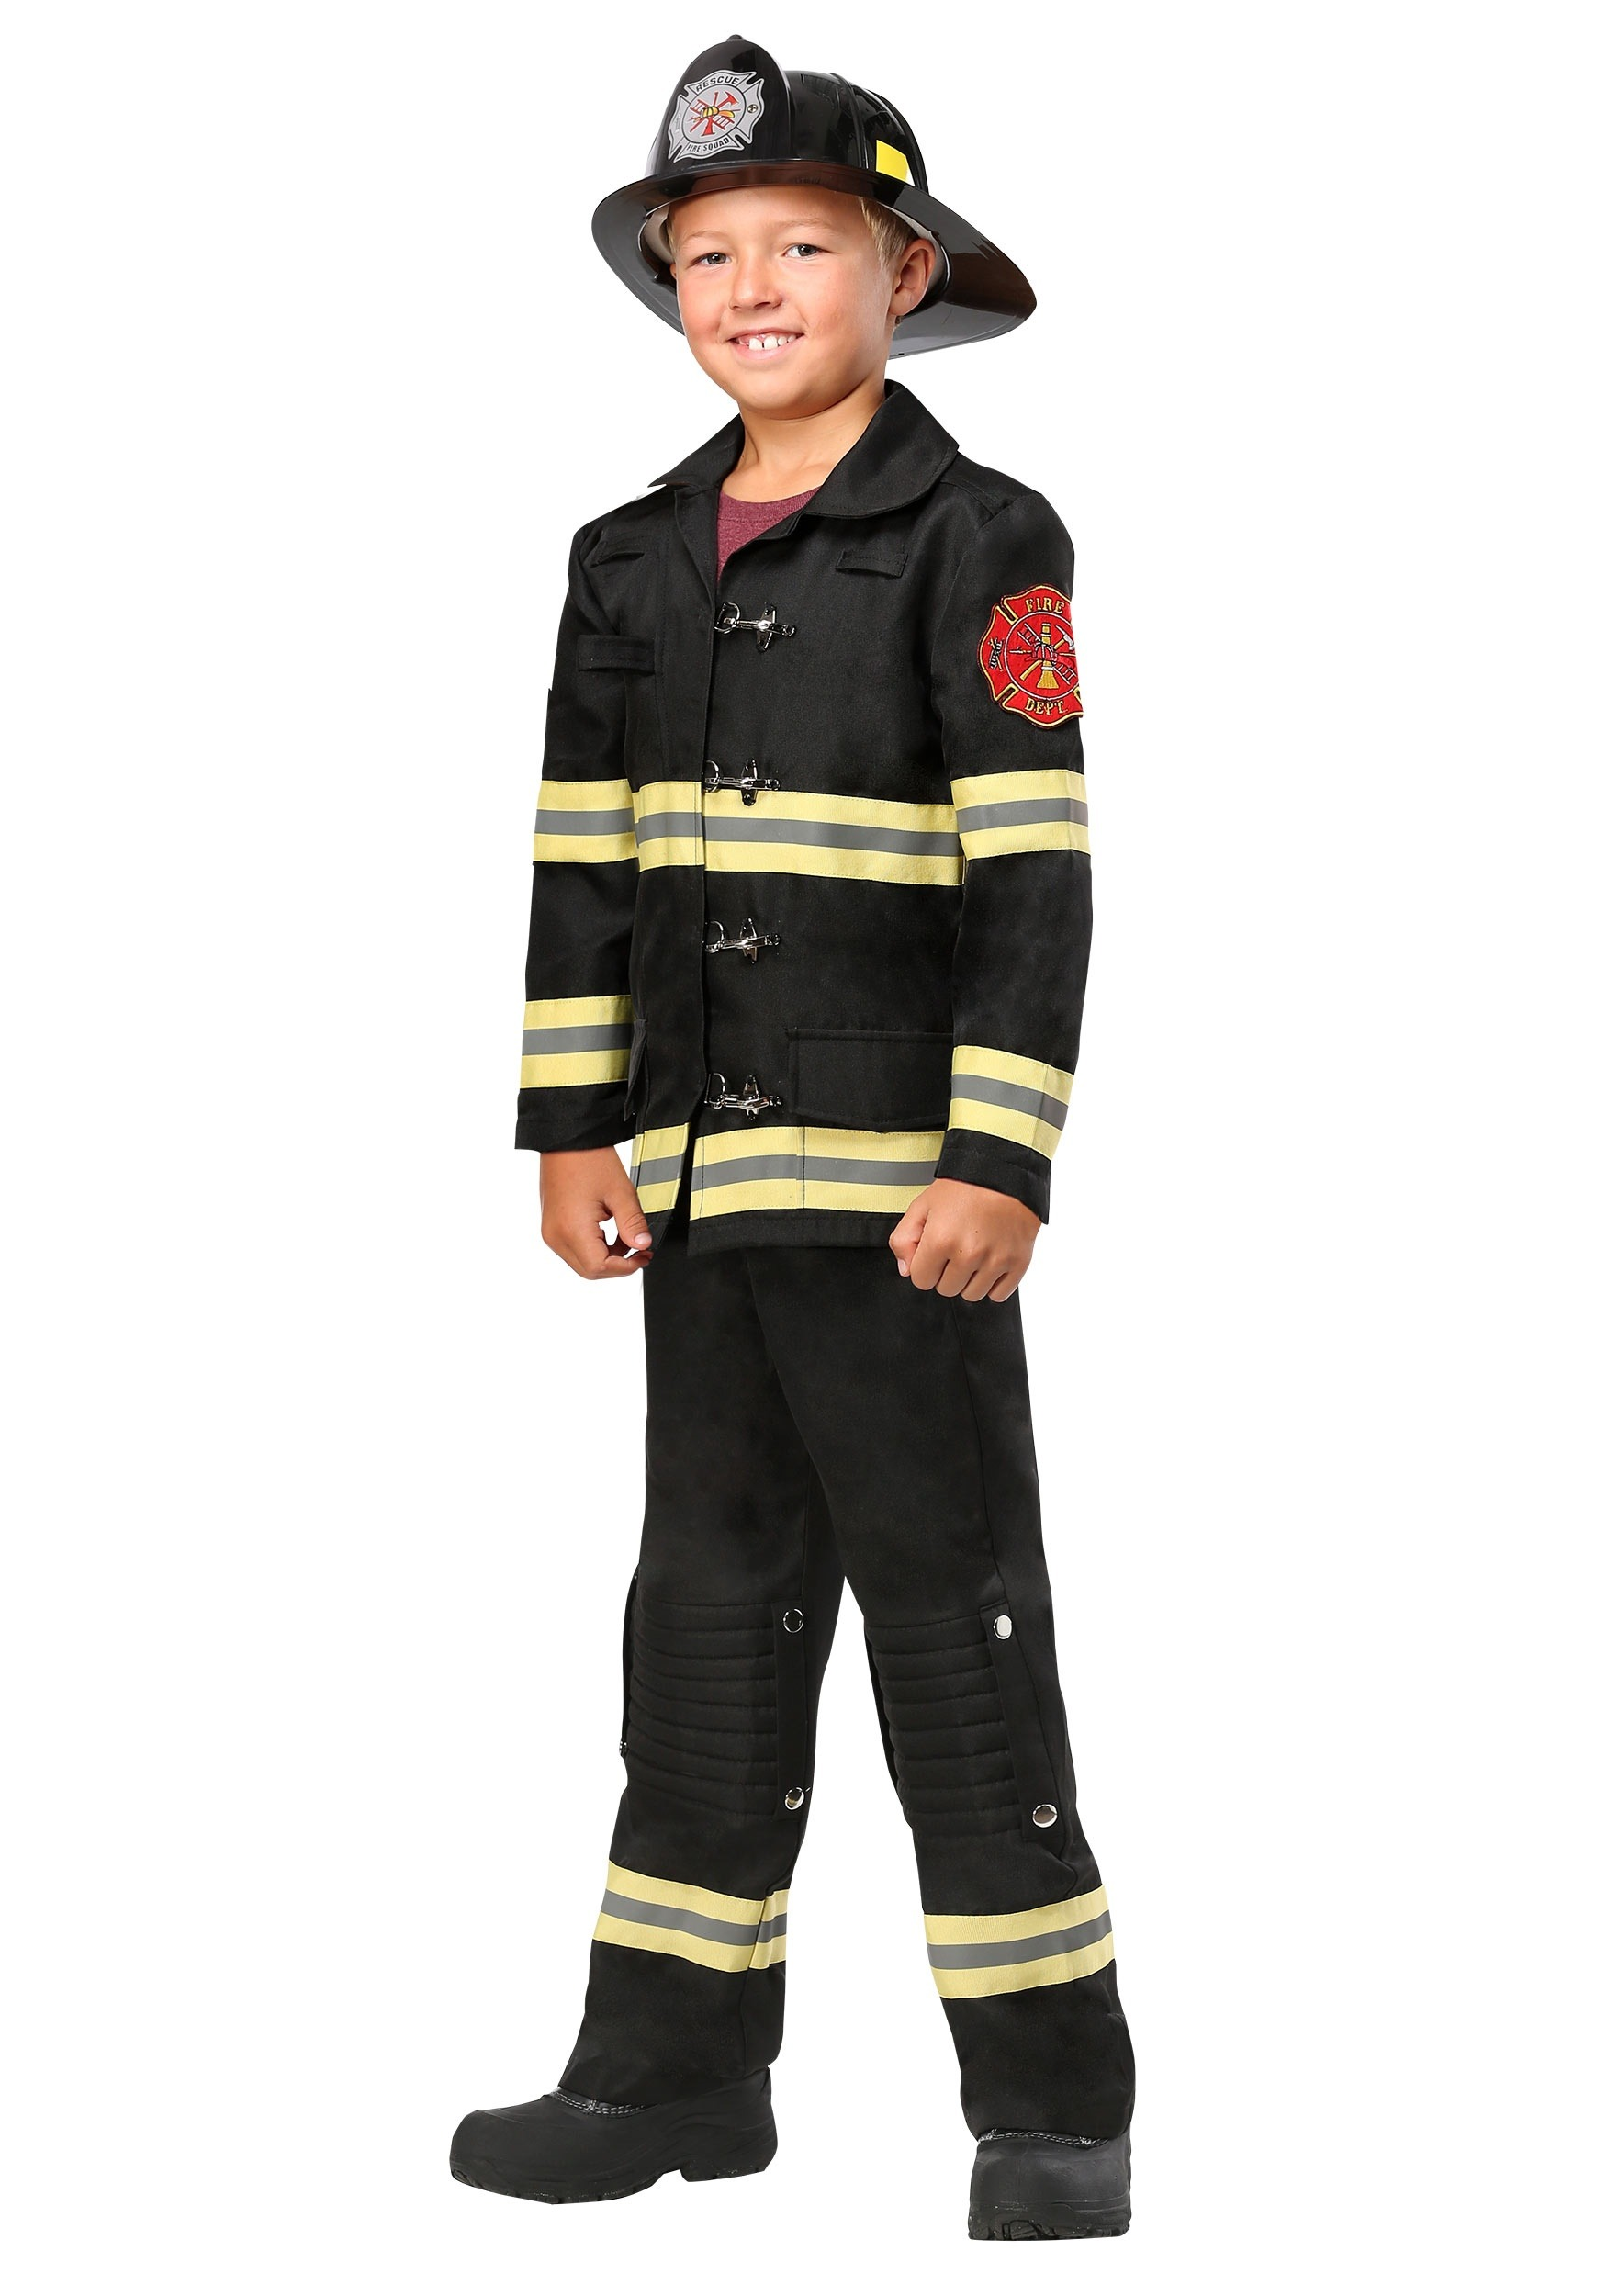 Black Uniform Firefighter Costume for Kids